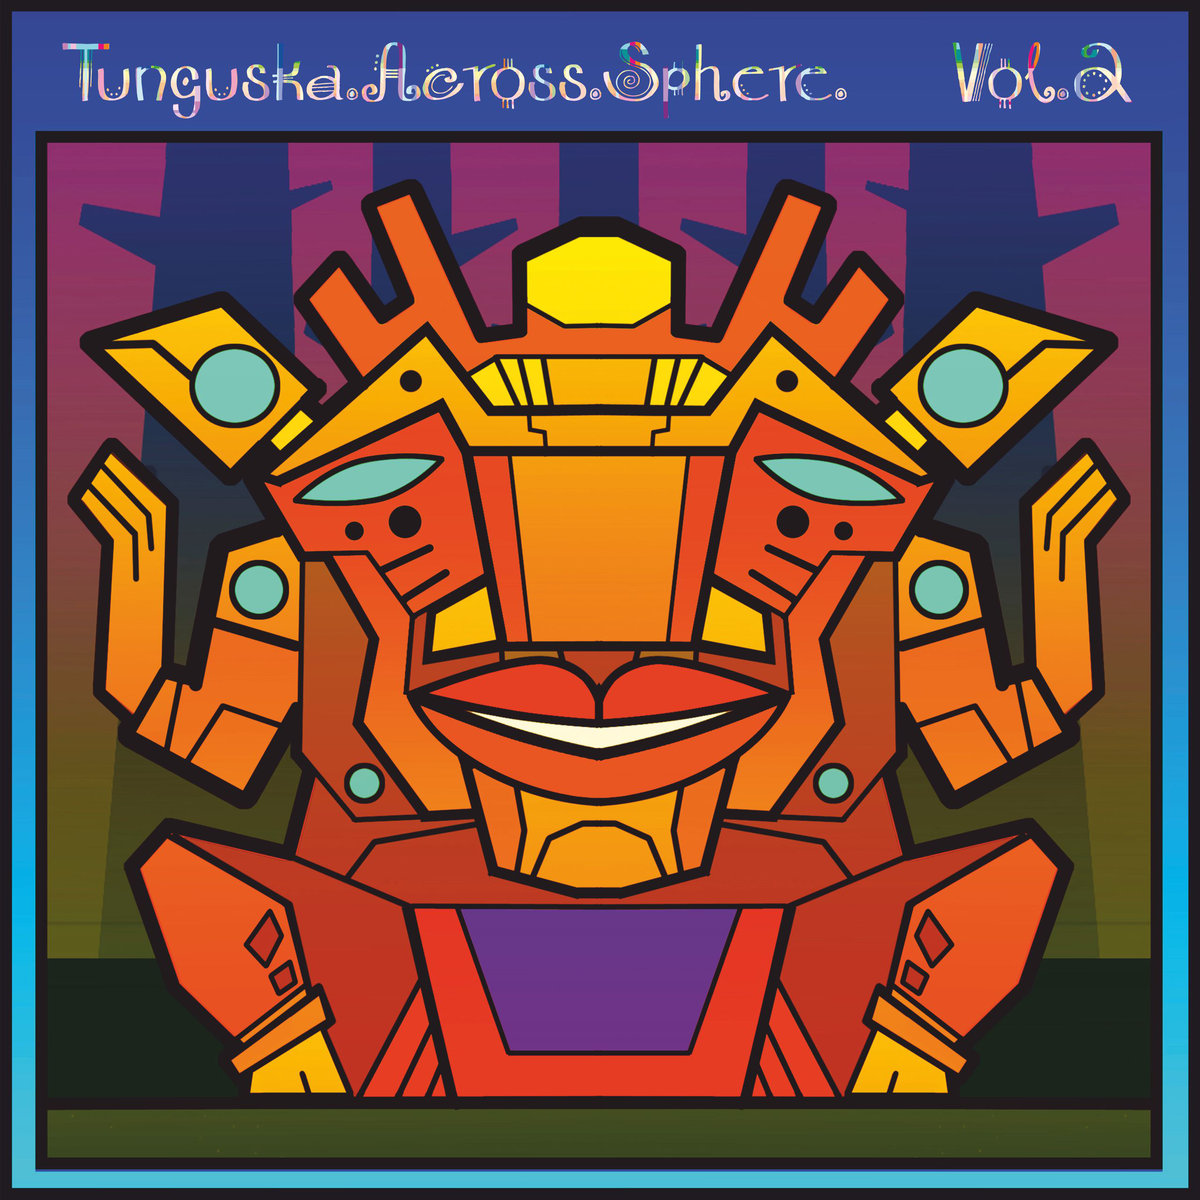 Bianco Soleil - Colombo Return's @ 'Ellipsis II - Tunguska.Across.Sphere. Vol.2' album (electronic, ambient)